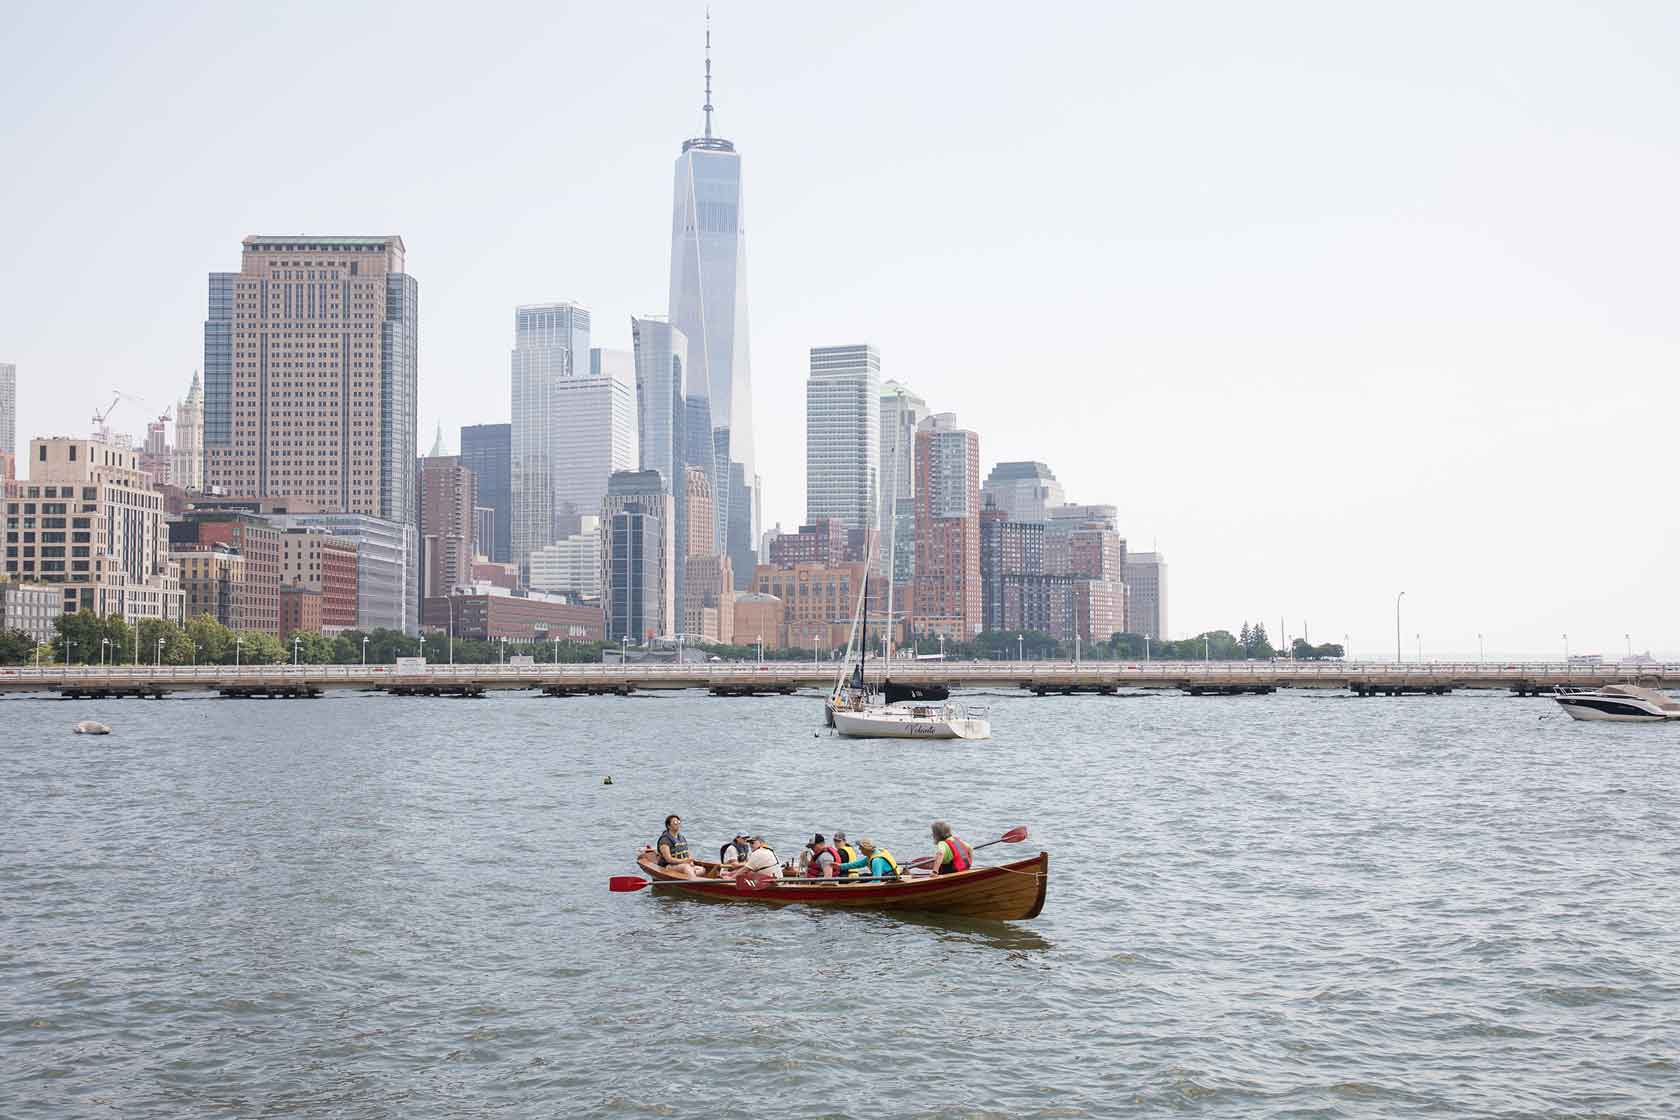 A group grab their paddles and begin rowing in the Hudson River